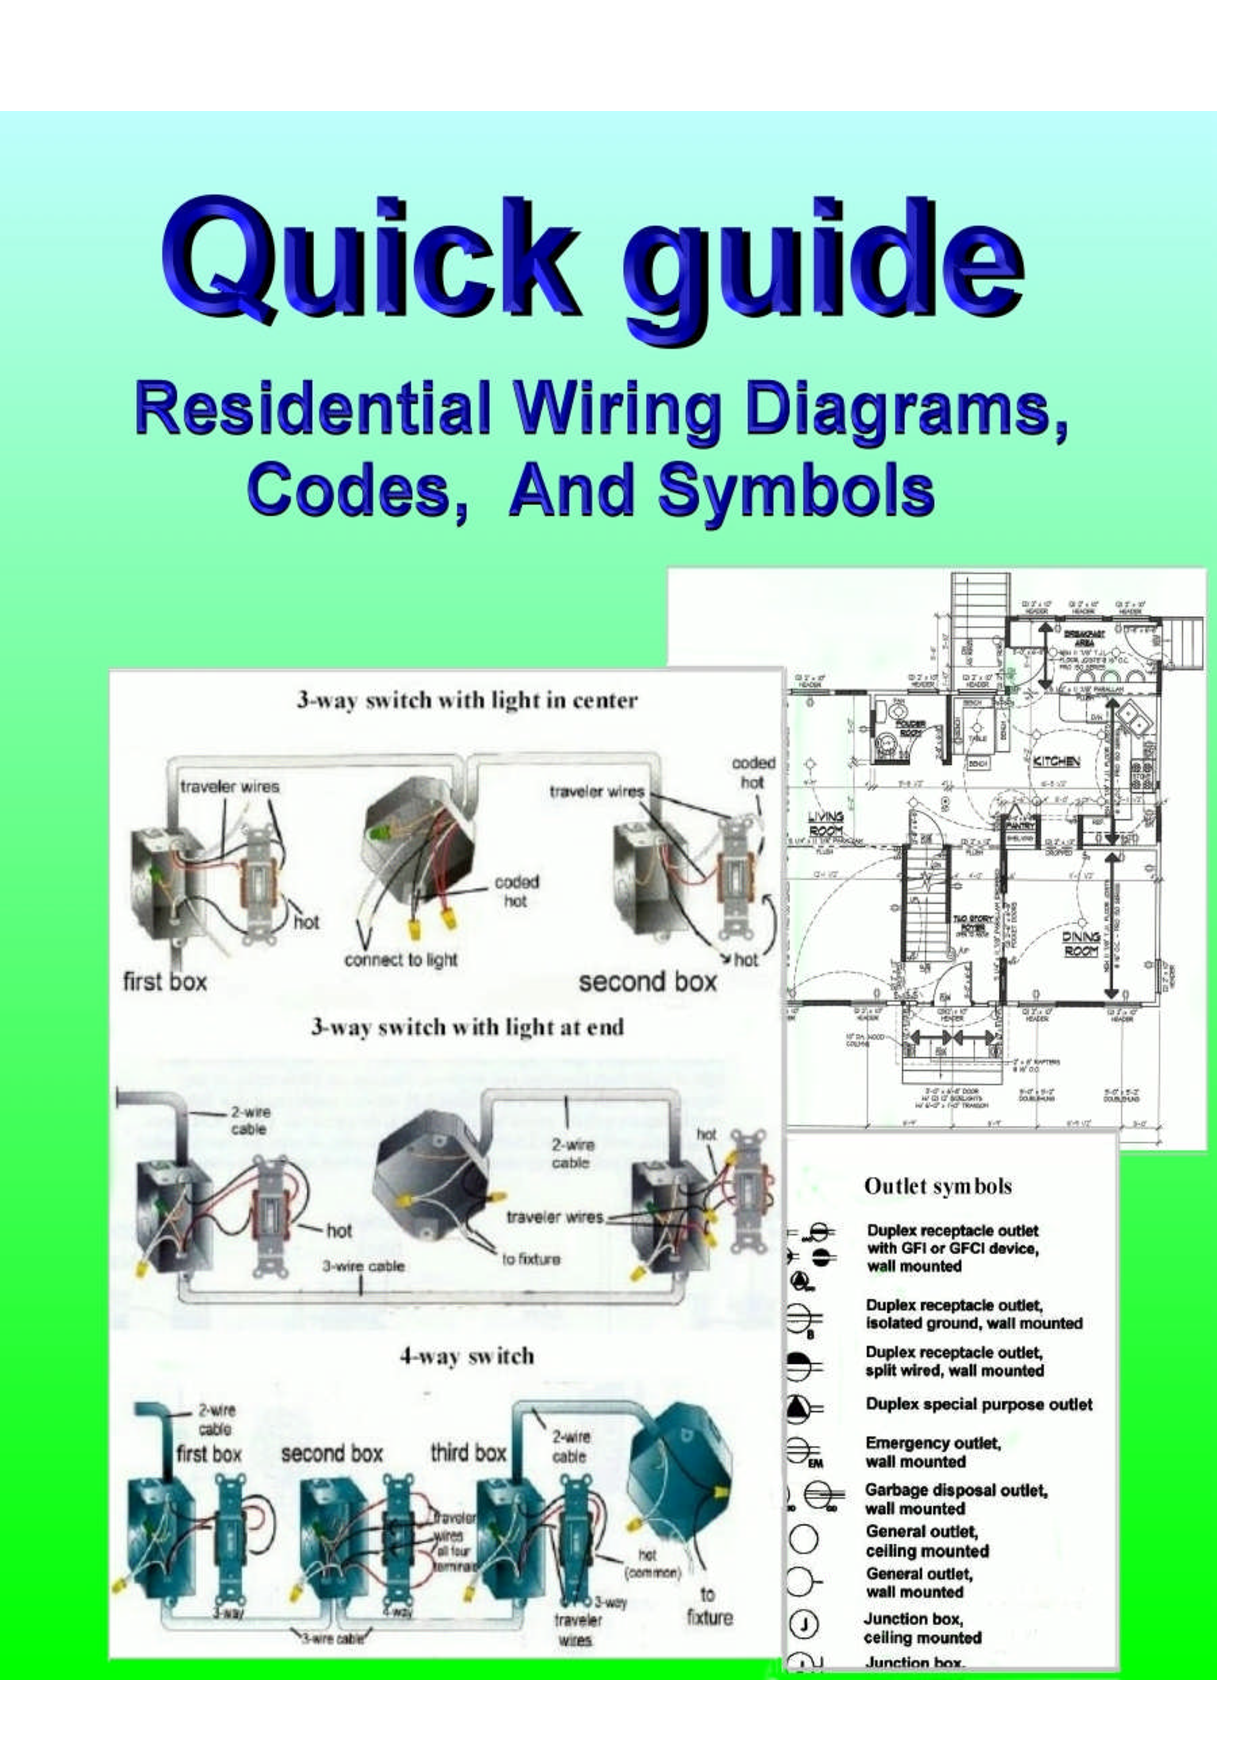 Outstanding Residential Electric Wiring Diagrams Wiring Diagram Wiring Cloud Staixaidewilluminateatxorg